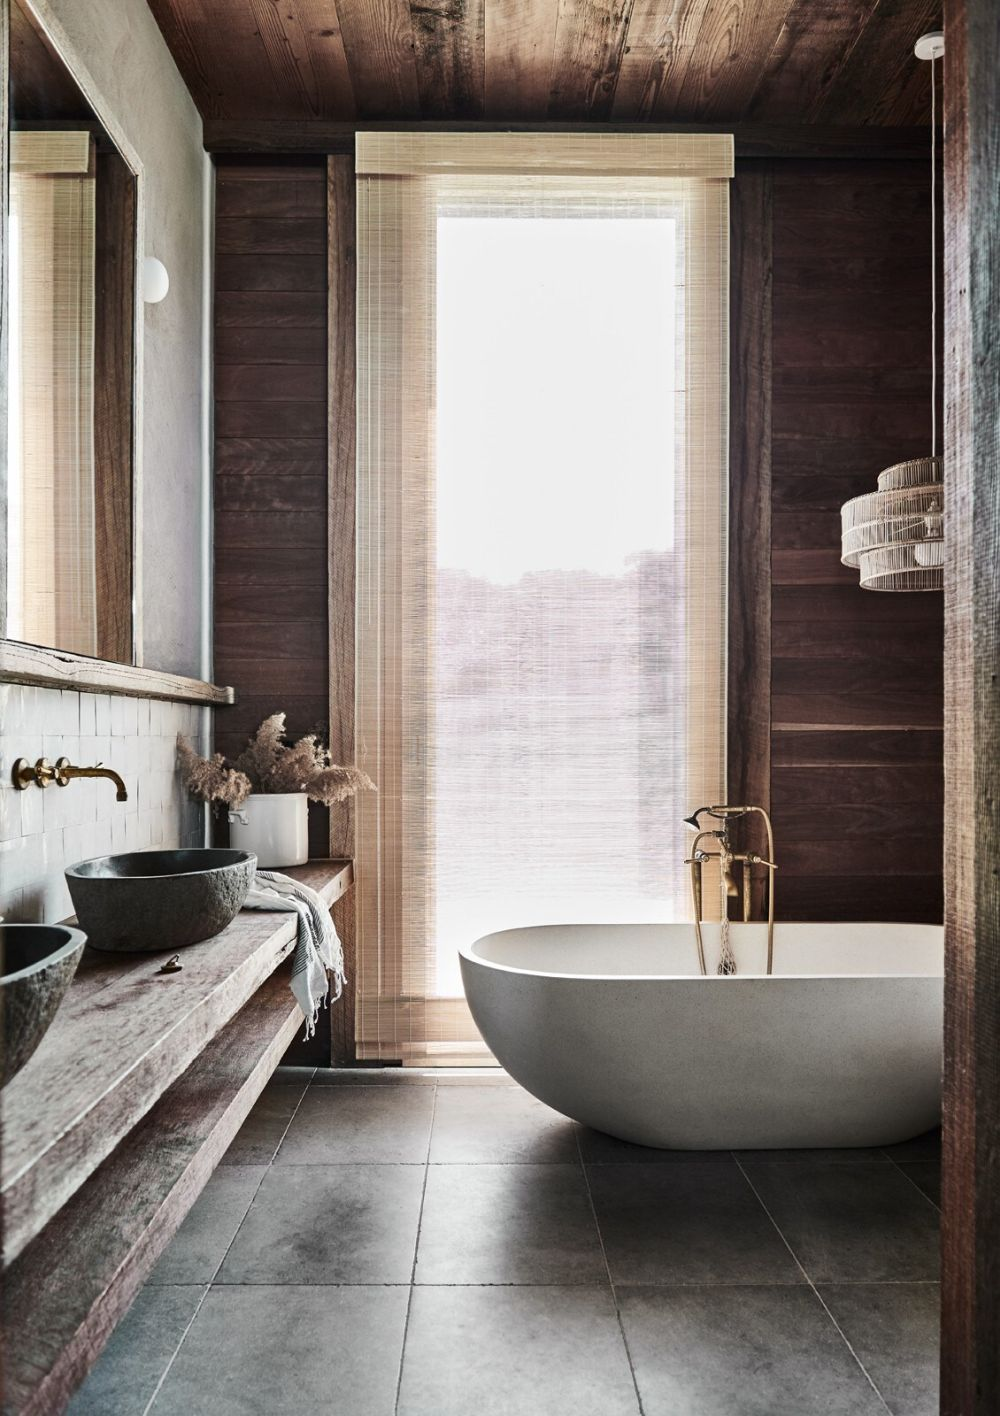 This bathroom features much natural wood, tiles, a white stone tub and even some views